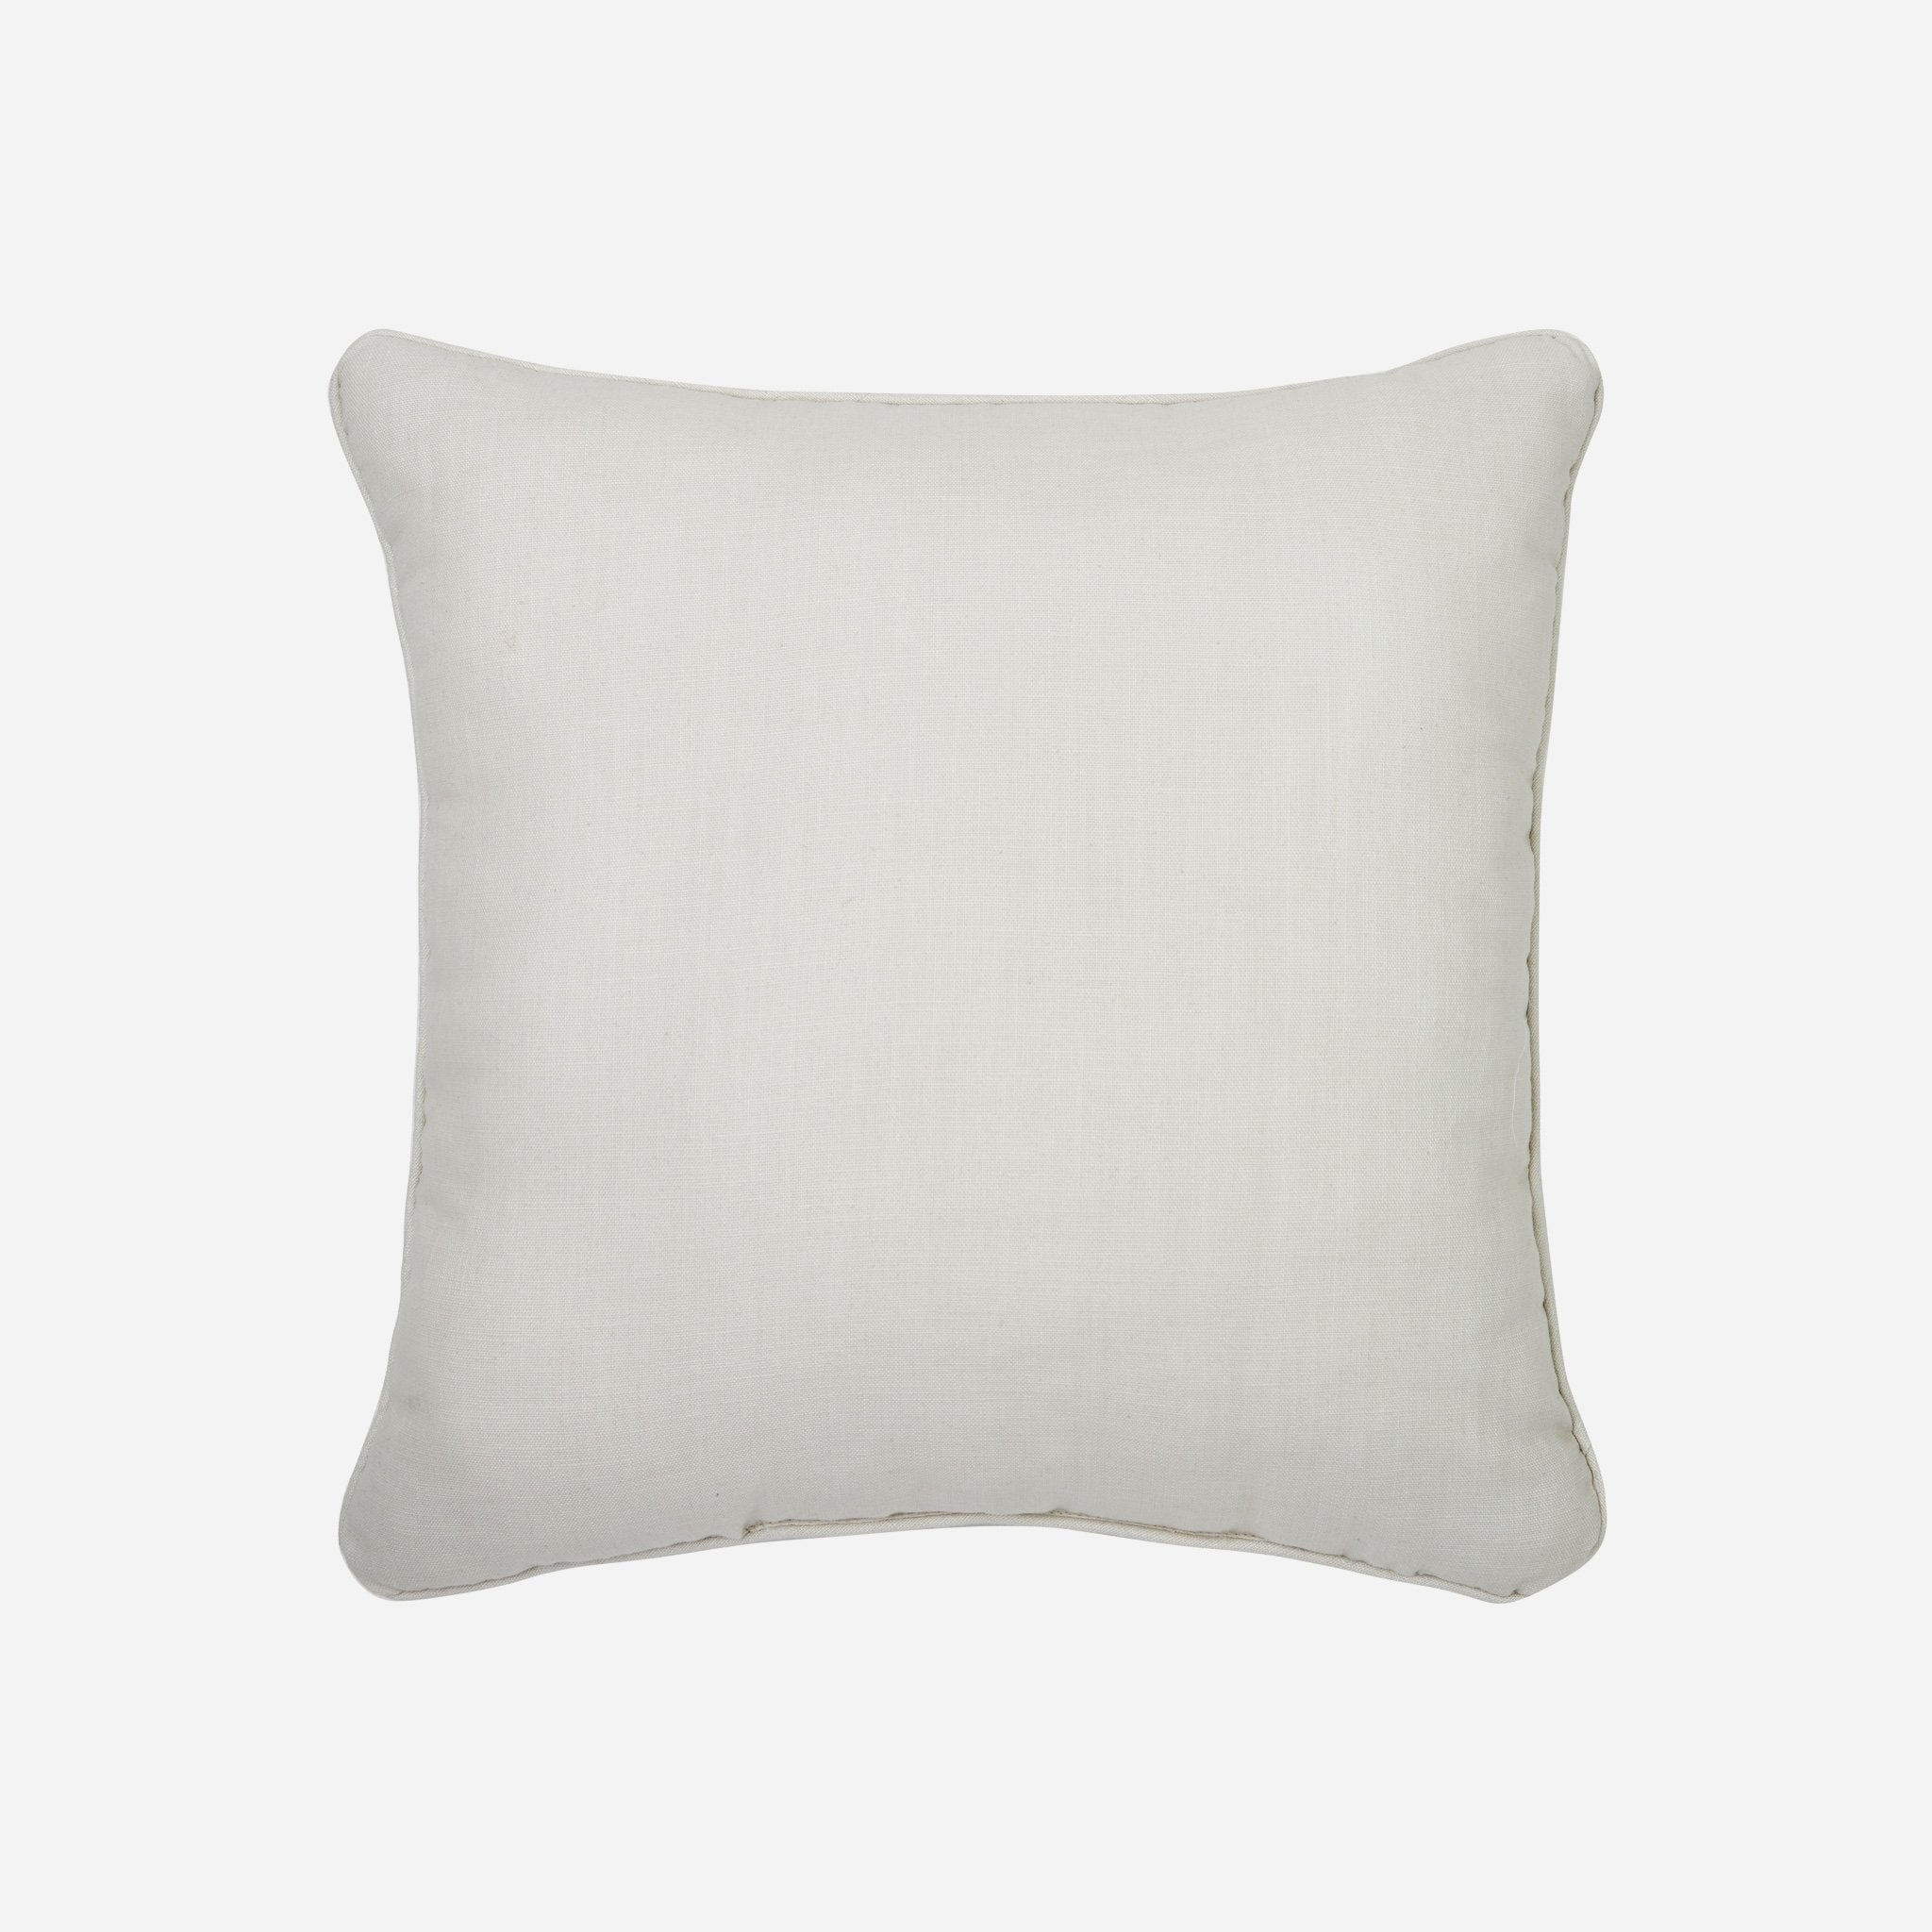 Phoebe Square Pillow